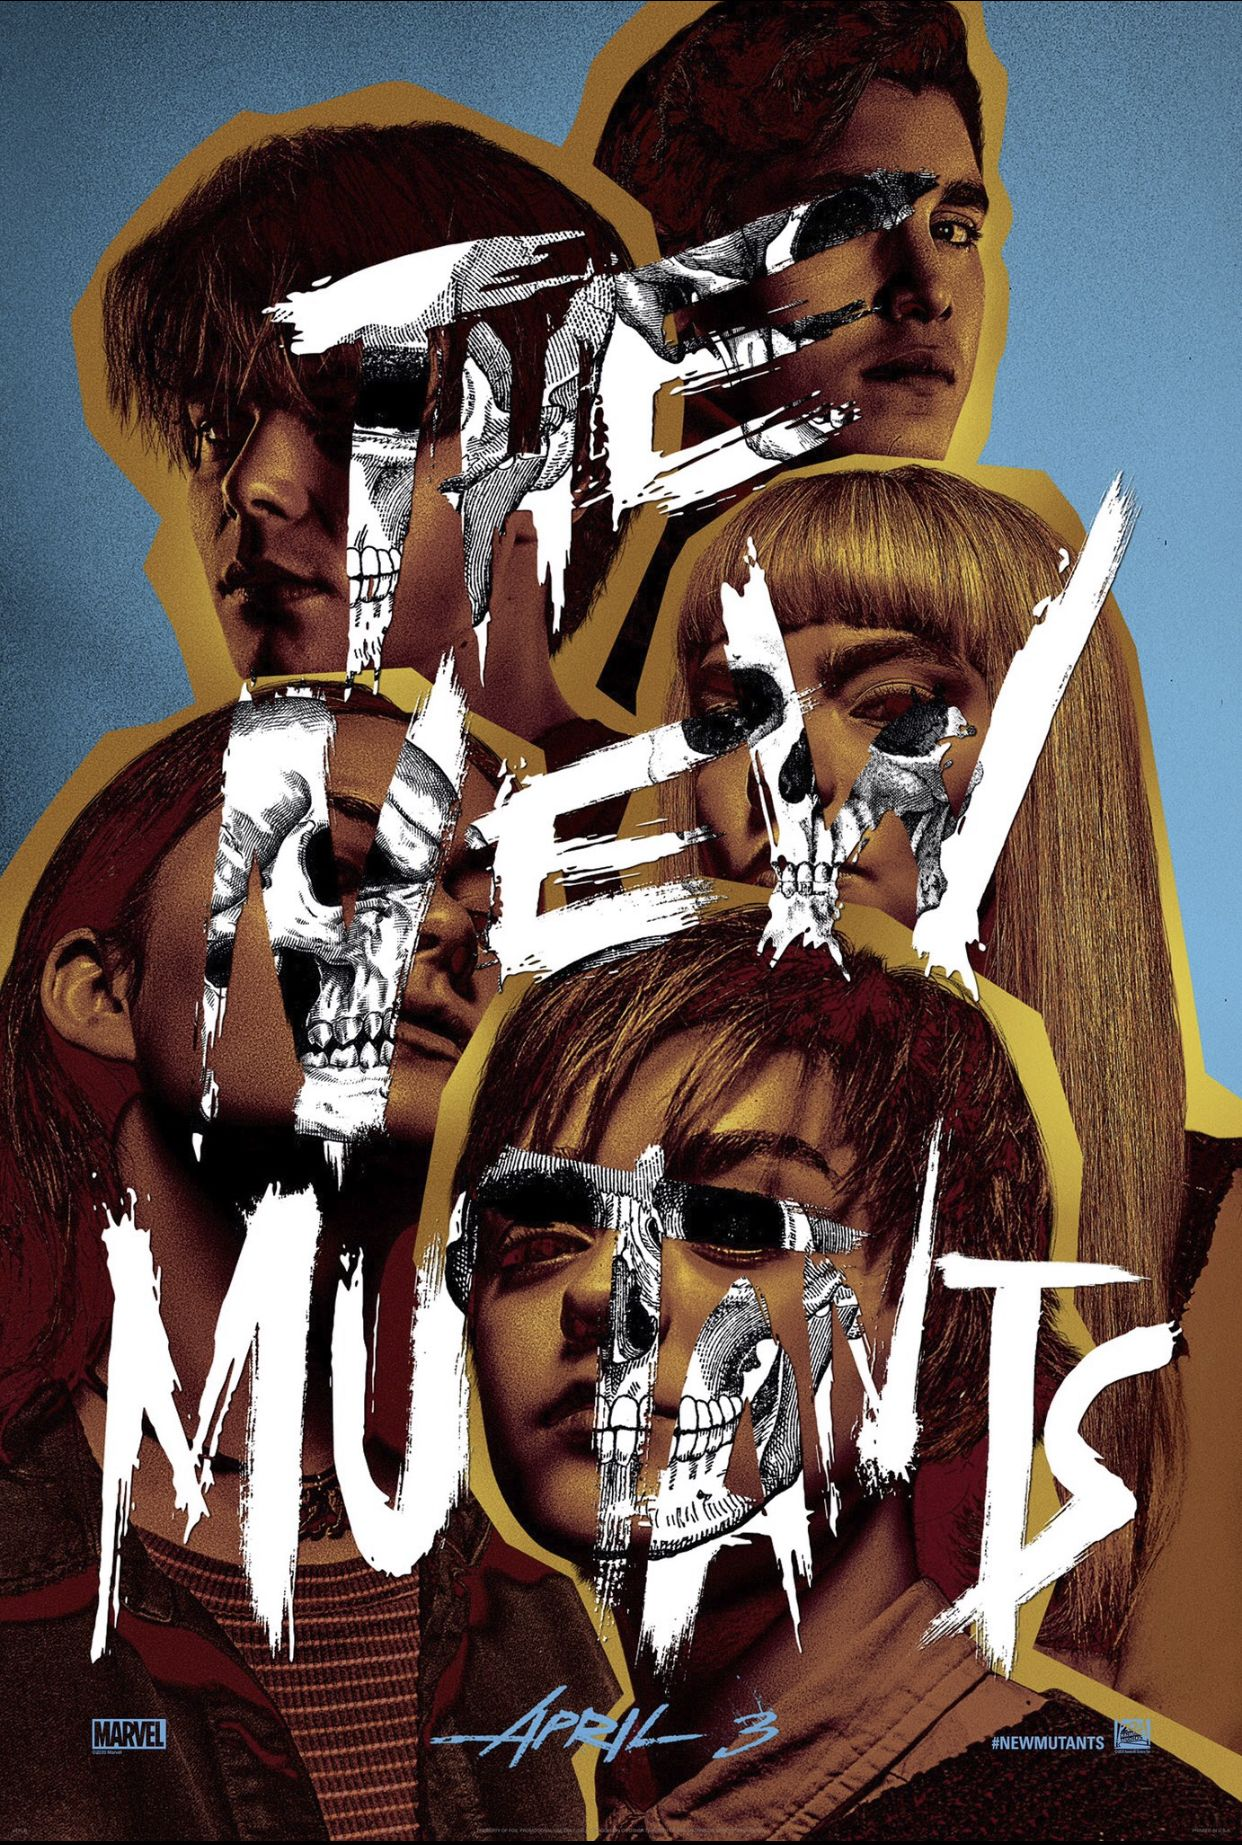 Pin By Arenukares On Movie Posters New Mutants Movie The New Mutants Free Movies Online